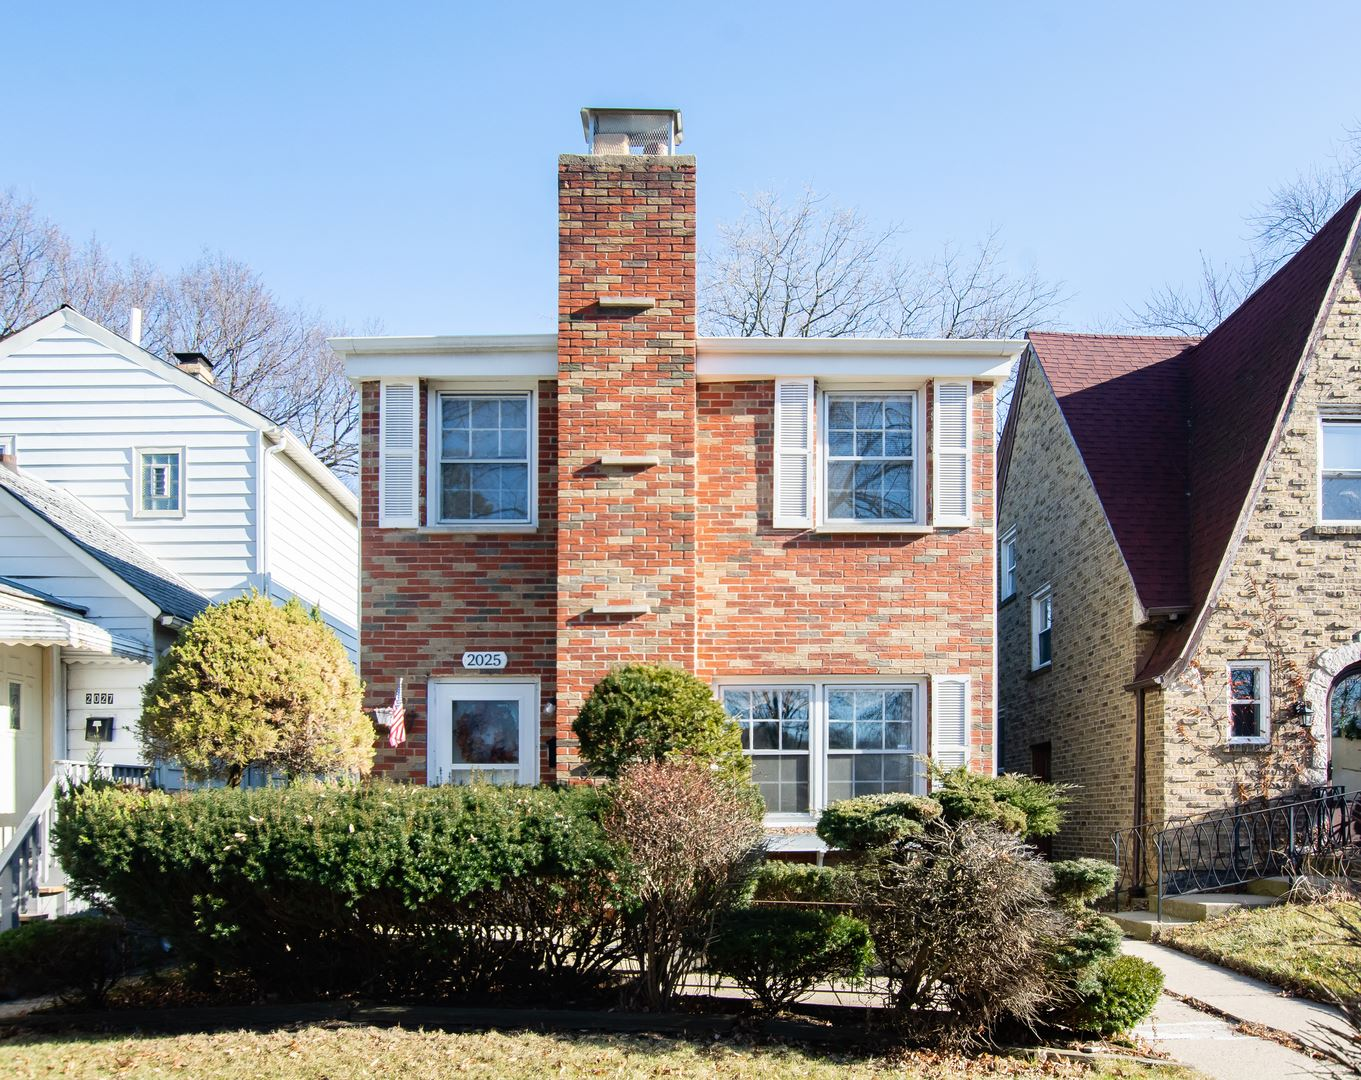 2025 Brown Avenue, Evanston, IL 60201 - #: 10612580